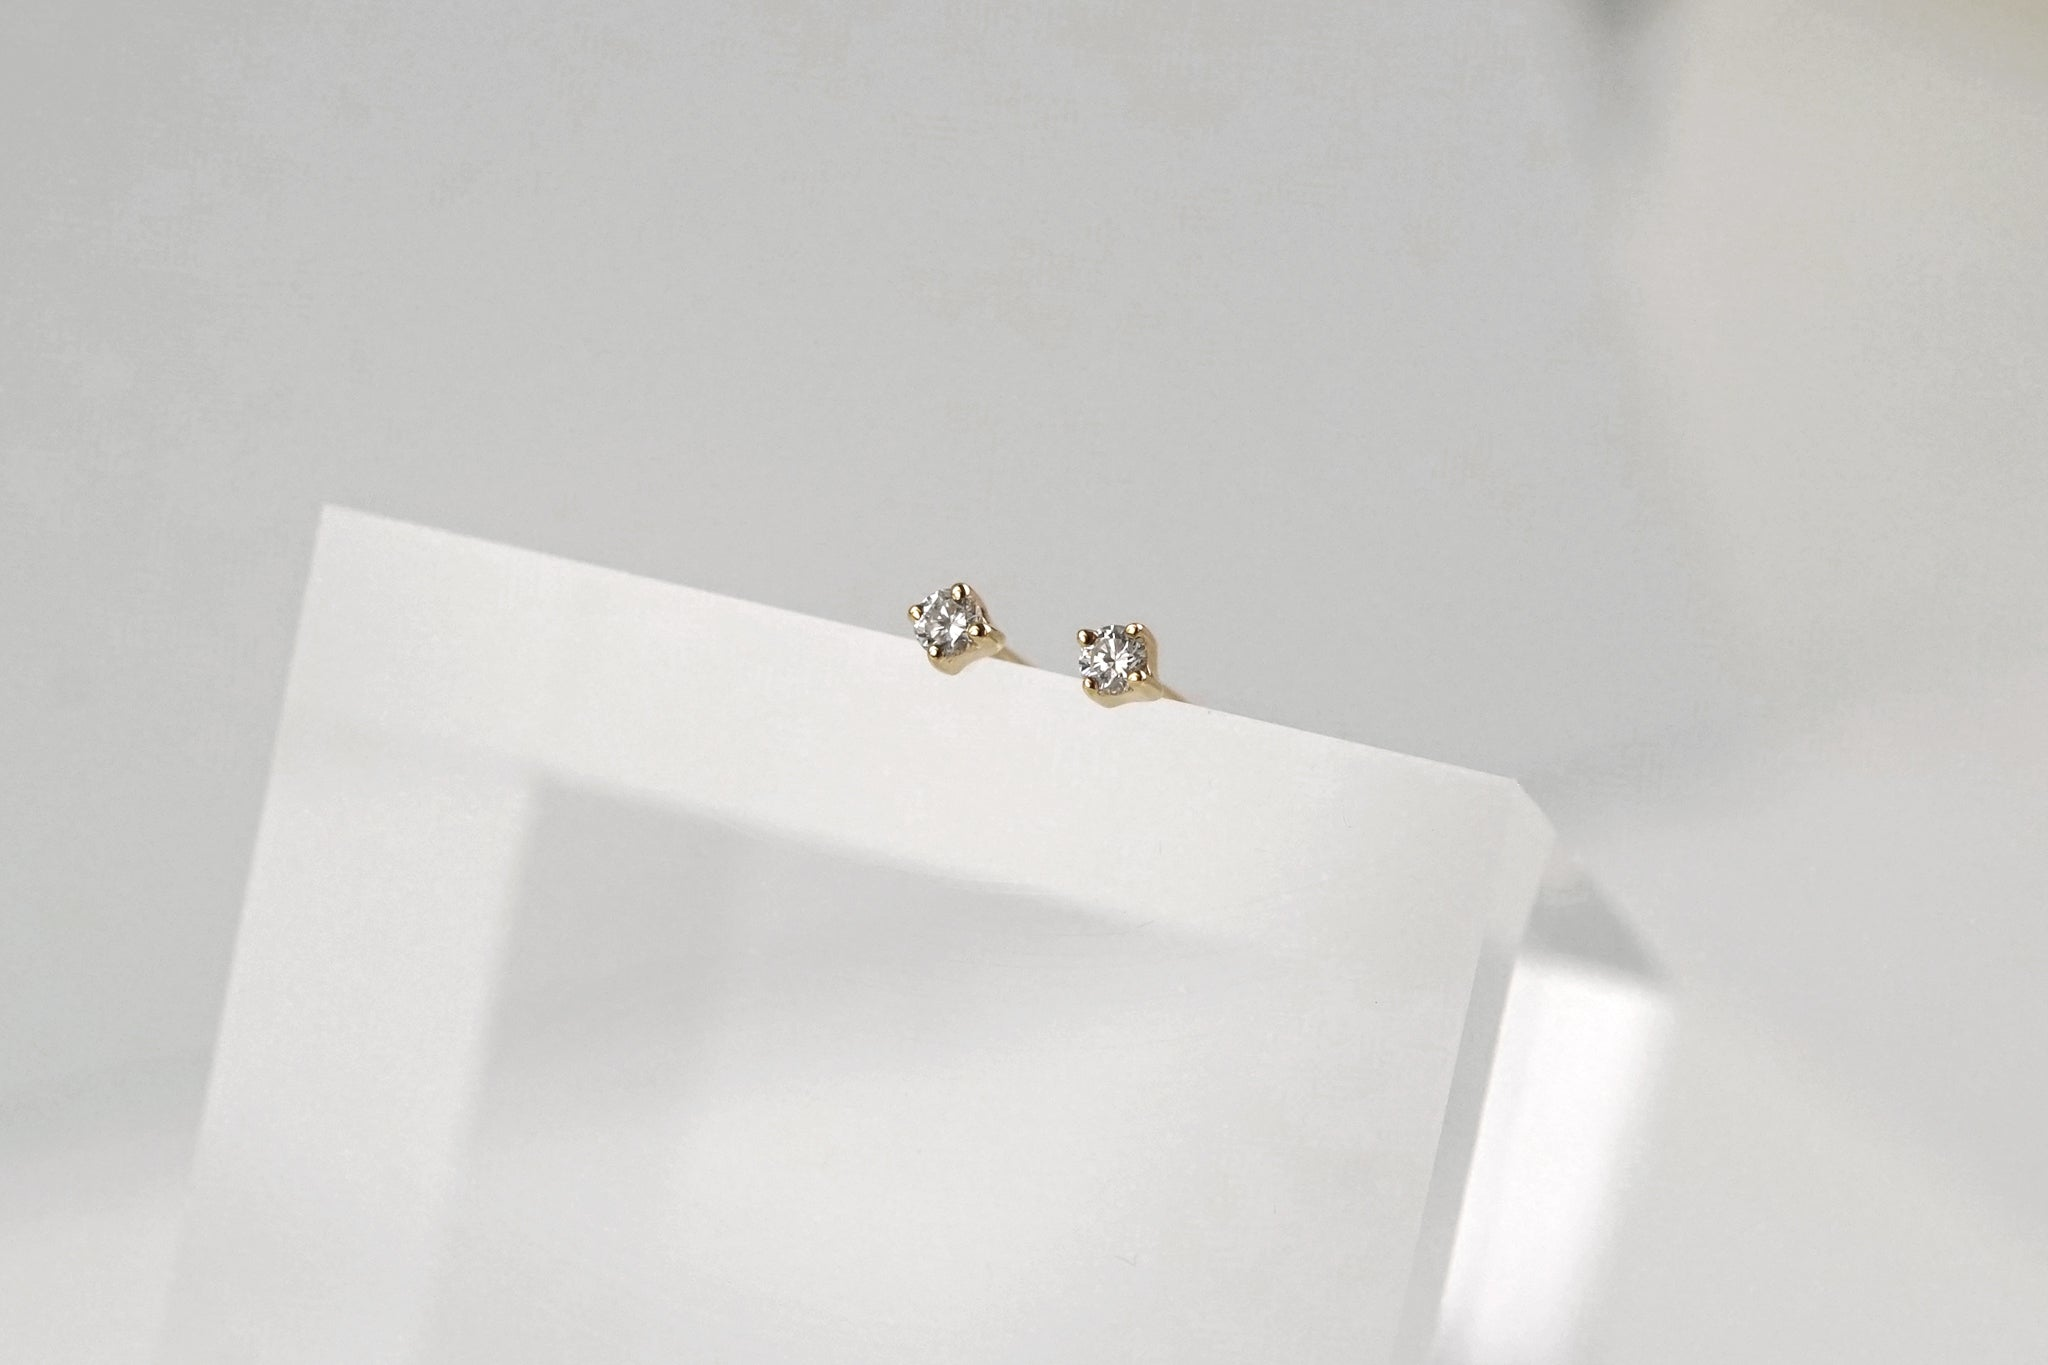 Mini Diamond Stud Earrings